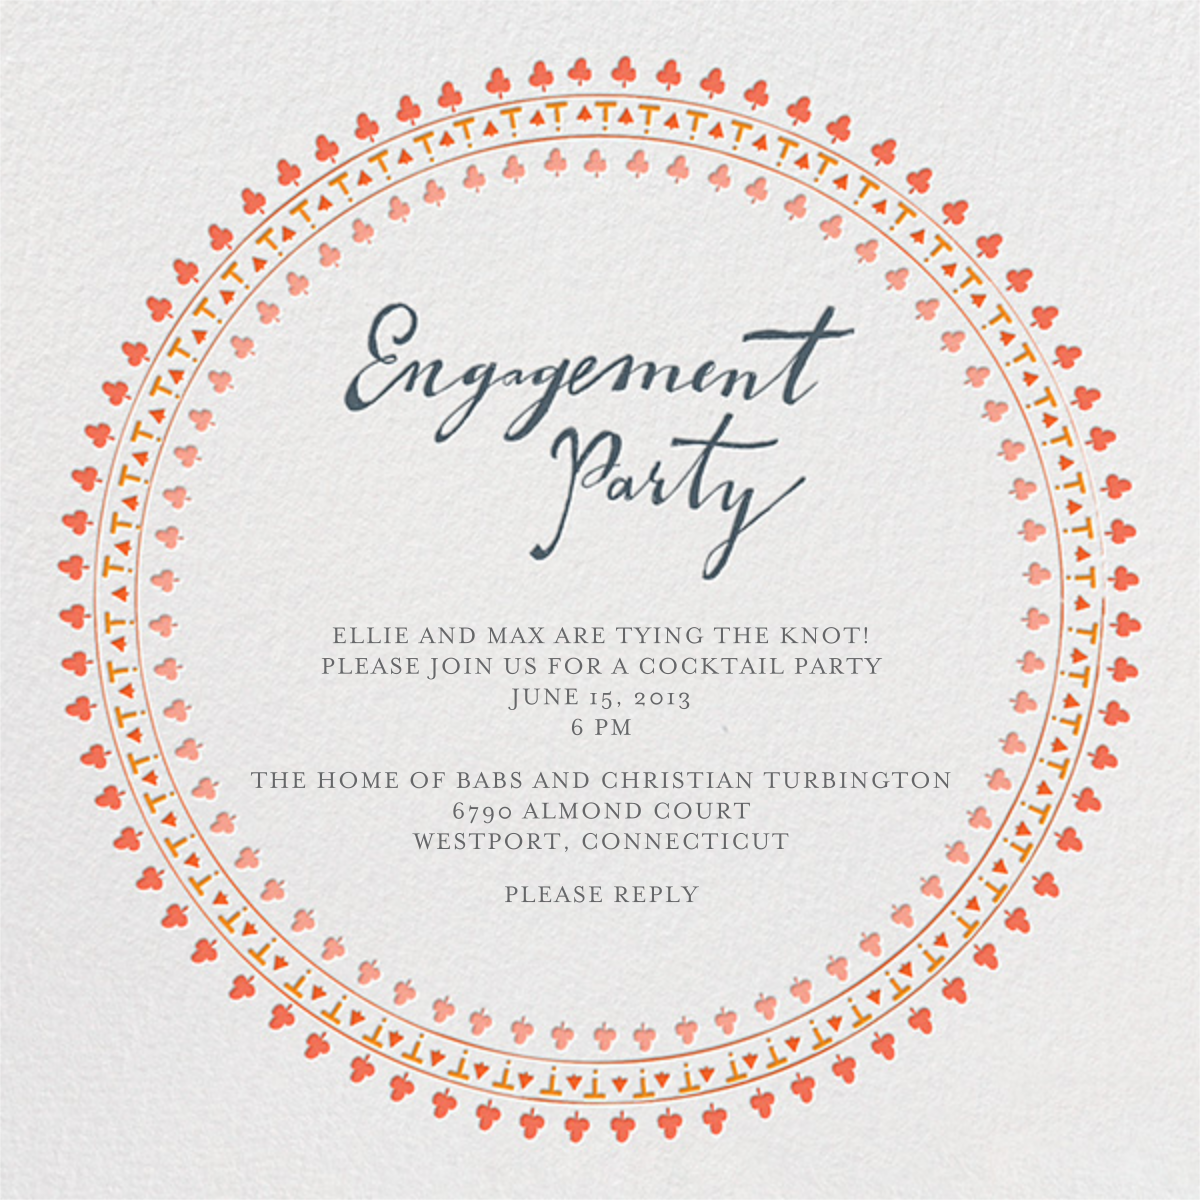 Are You Engaged - Pinks - Mr. Boddington's Studio - Engagement party